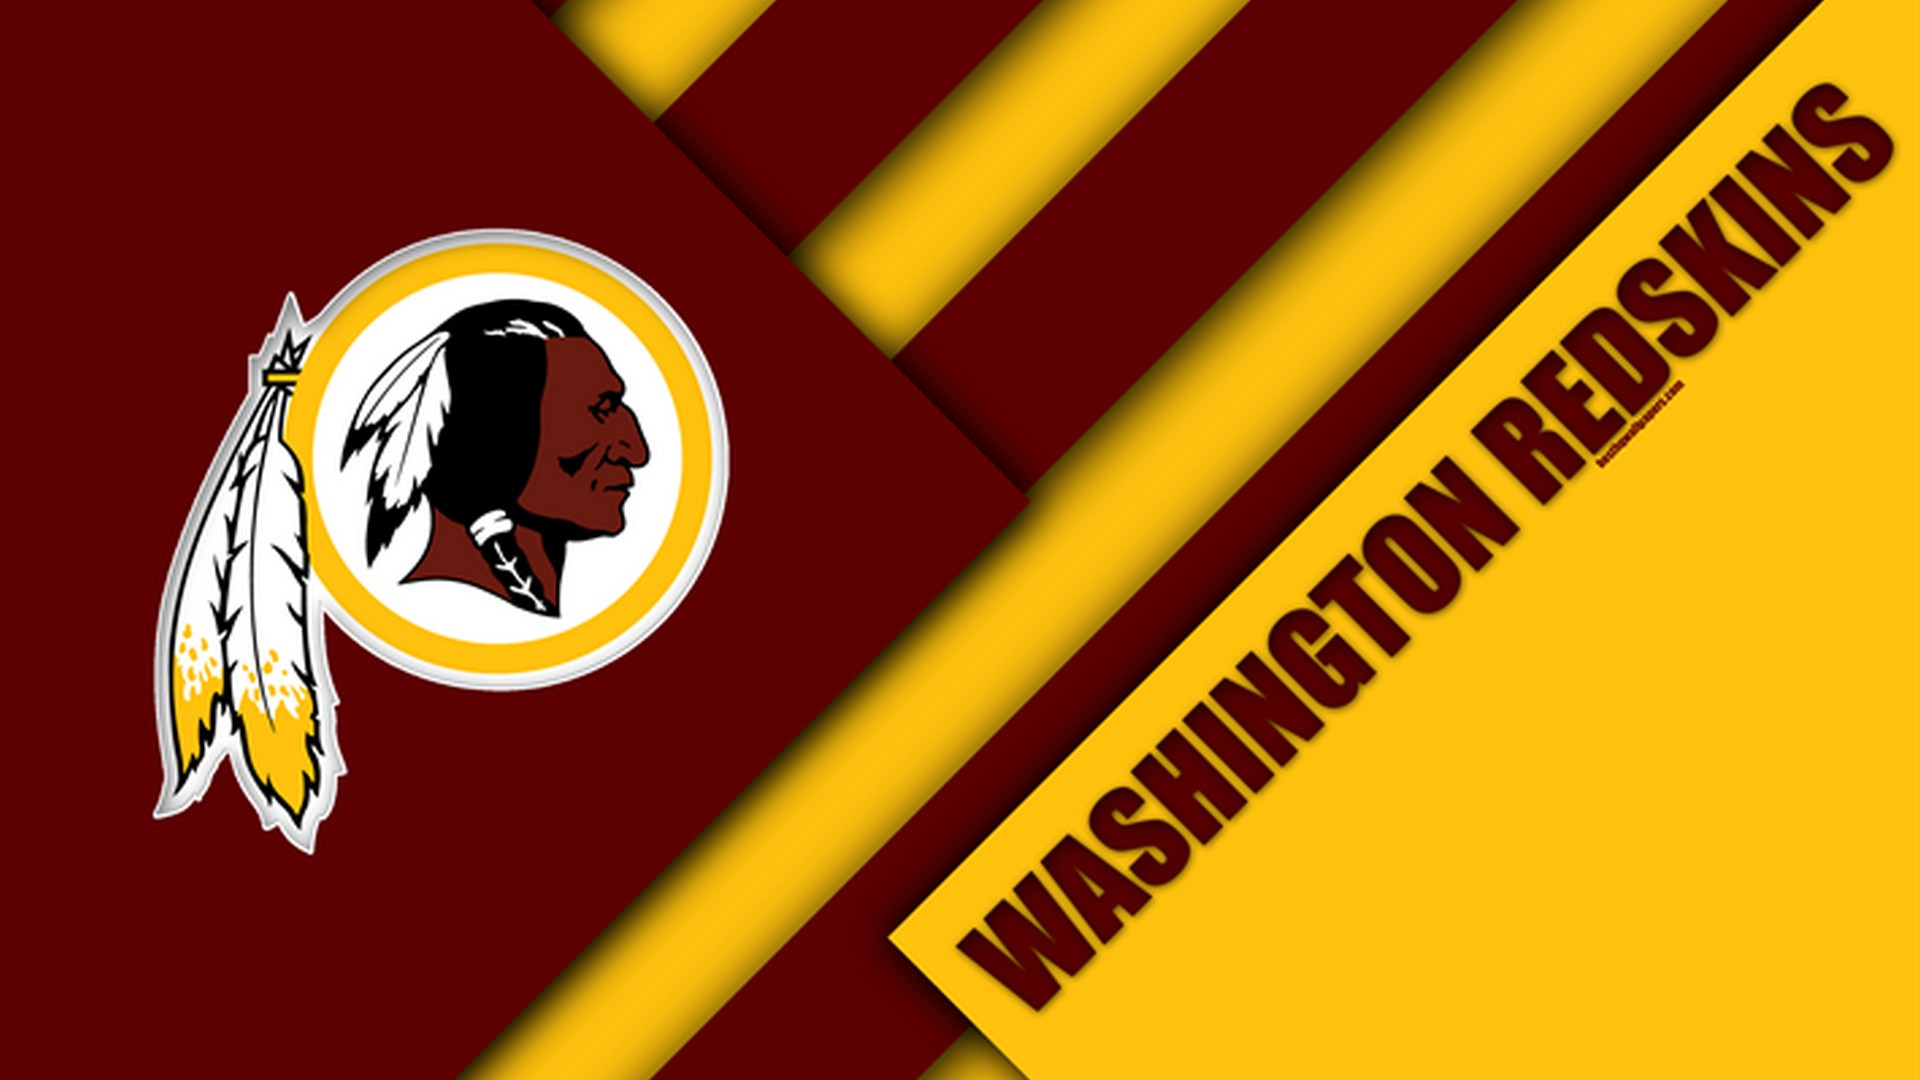 Washington Redskins Wallpaper with high-resolution 1920x1080 pixel. You can use this wallpaper for your Mac or Windows Desktop Background, iPhone, Android or Tablet and another Smartphone device